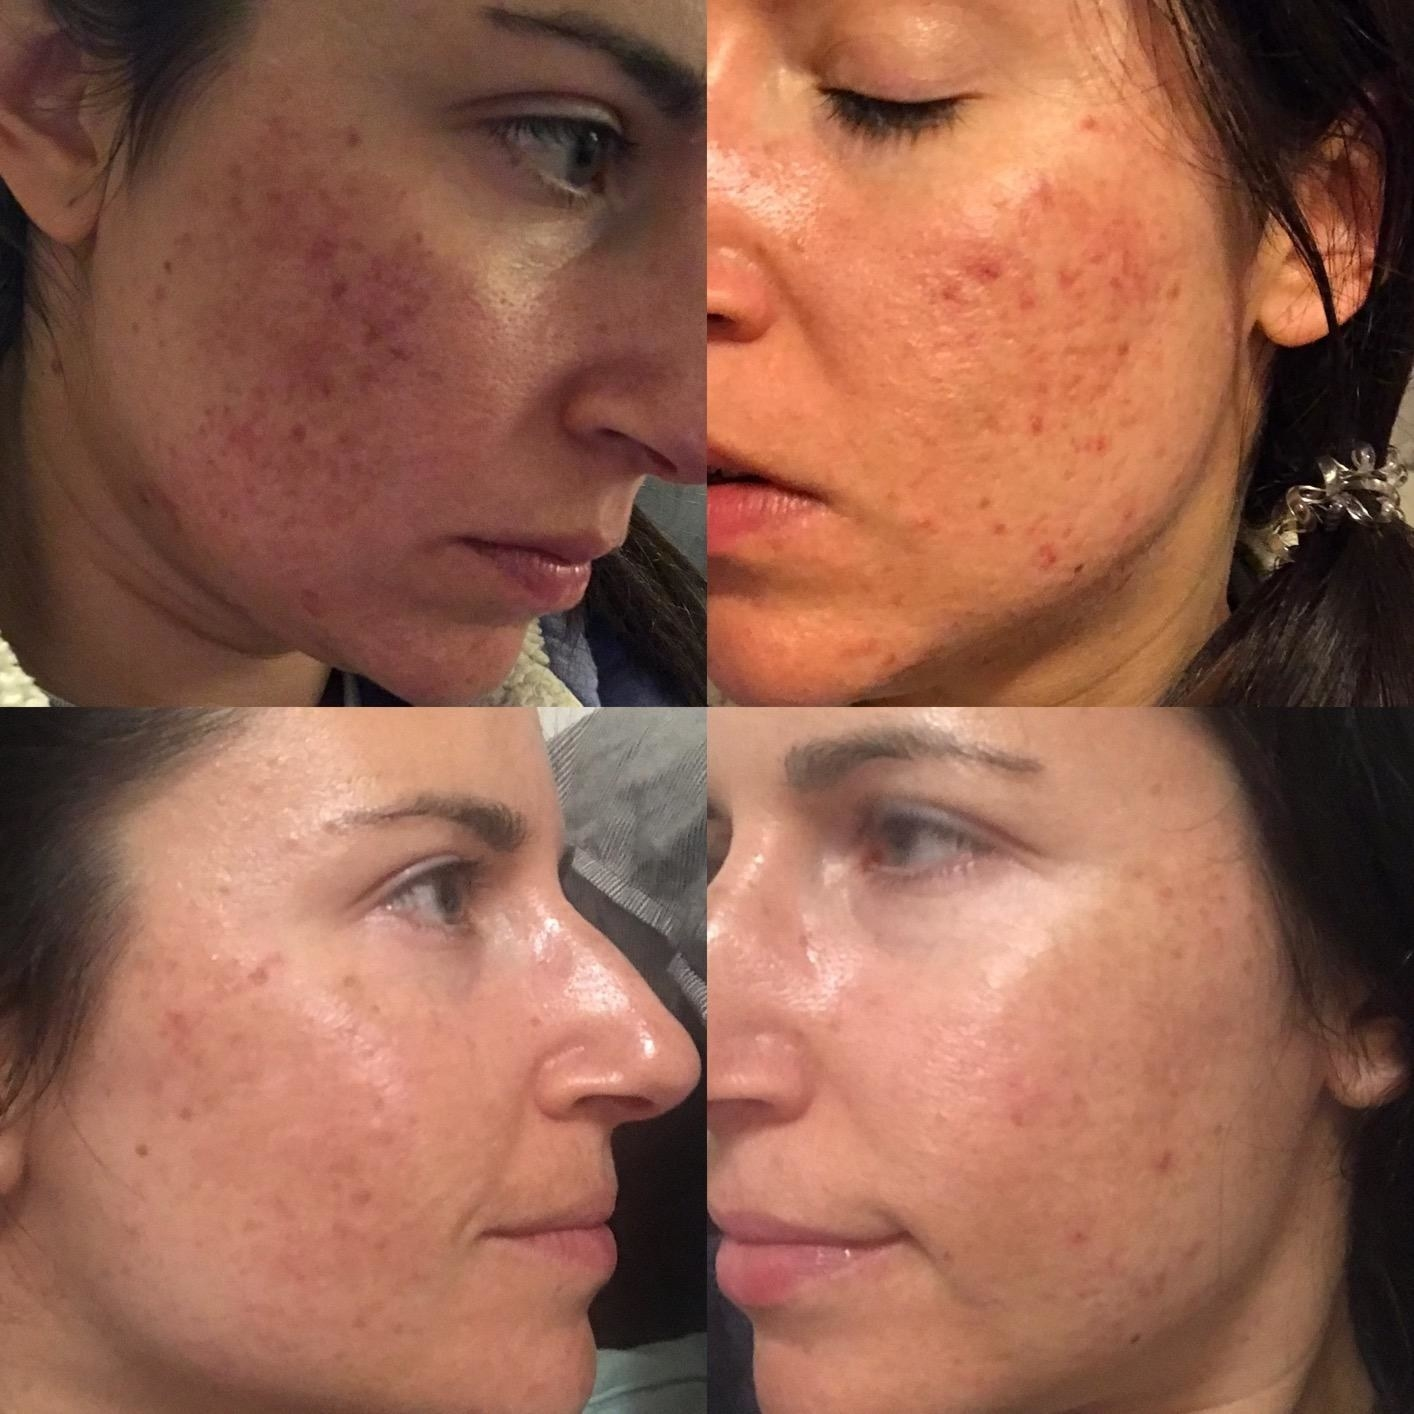 reviewer image of two before pictures with acne spots and red bumps and two after images with clear skin on the cheeks after using the products